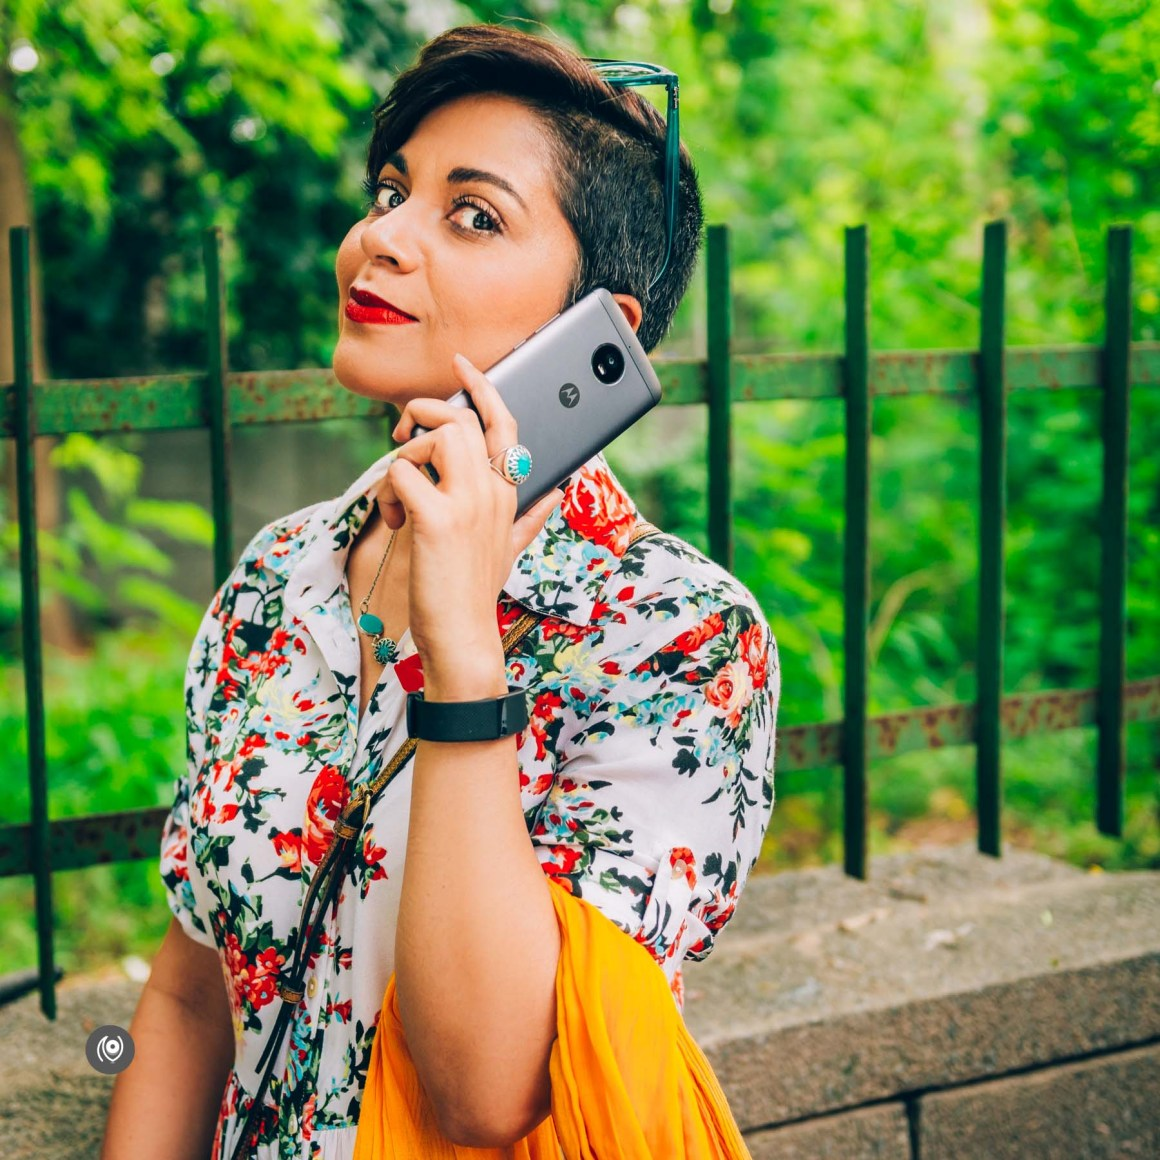 Naina.co, Naina Redhu, Motorola India, MotoE4Plus, Moto E4 Plus, Mobile Device, EyesForTechnology, Technology, Smartphone, 500 mAH Battery, Long lasting battery, Mobile Phone, Lifestyle, Luxury, Photographer, Blogger, Content Strategist, Content Queen, Video Production, Video Produced, Video